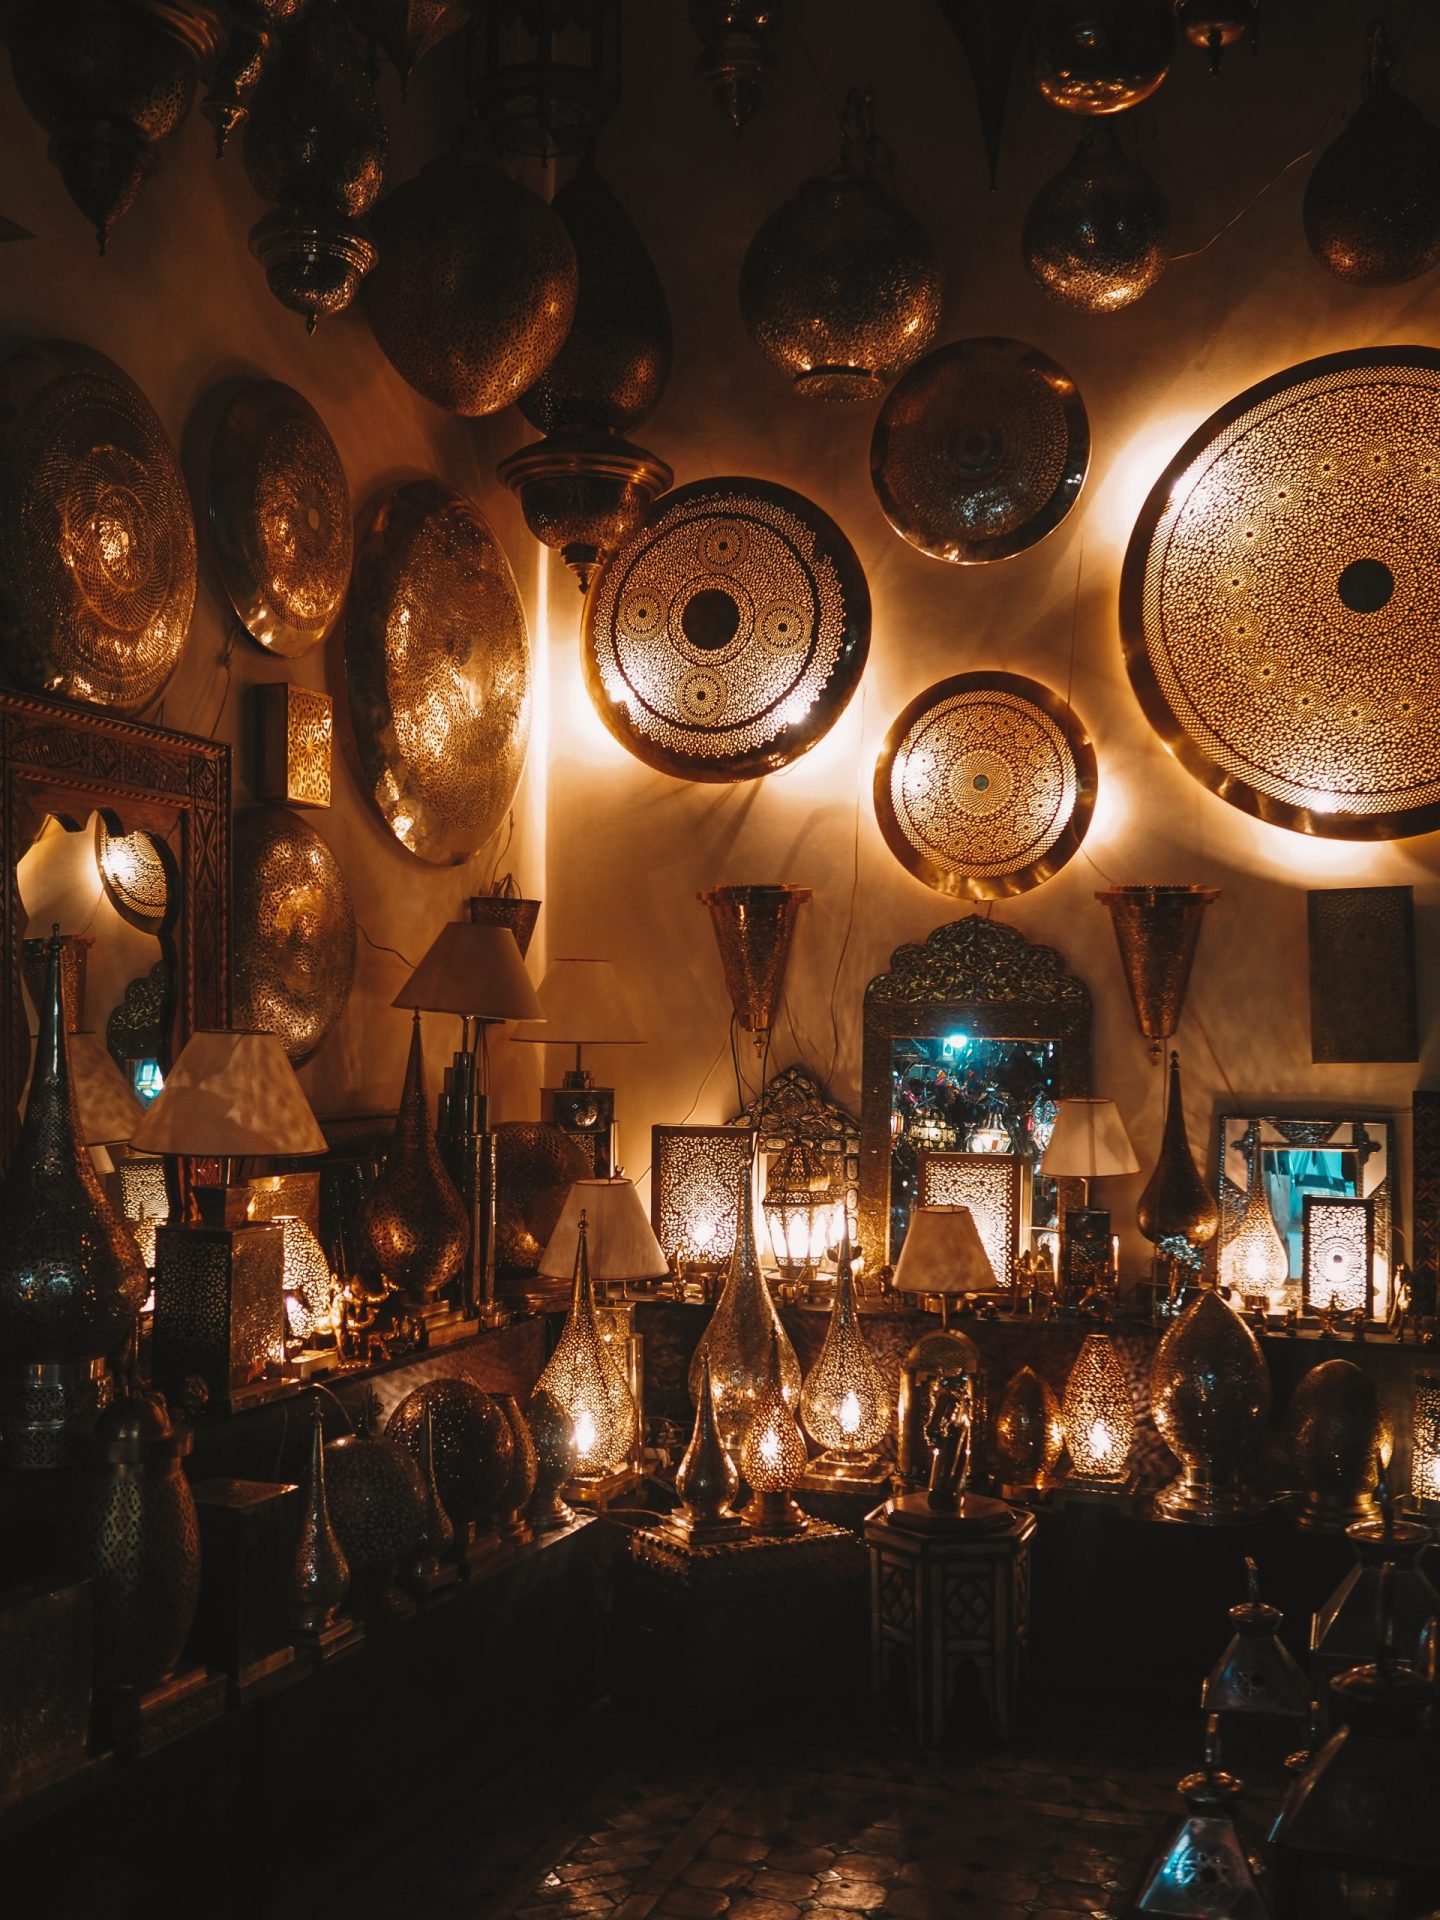 Lantern shop in Marrakesh